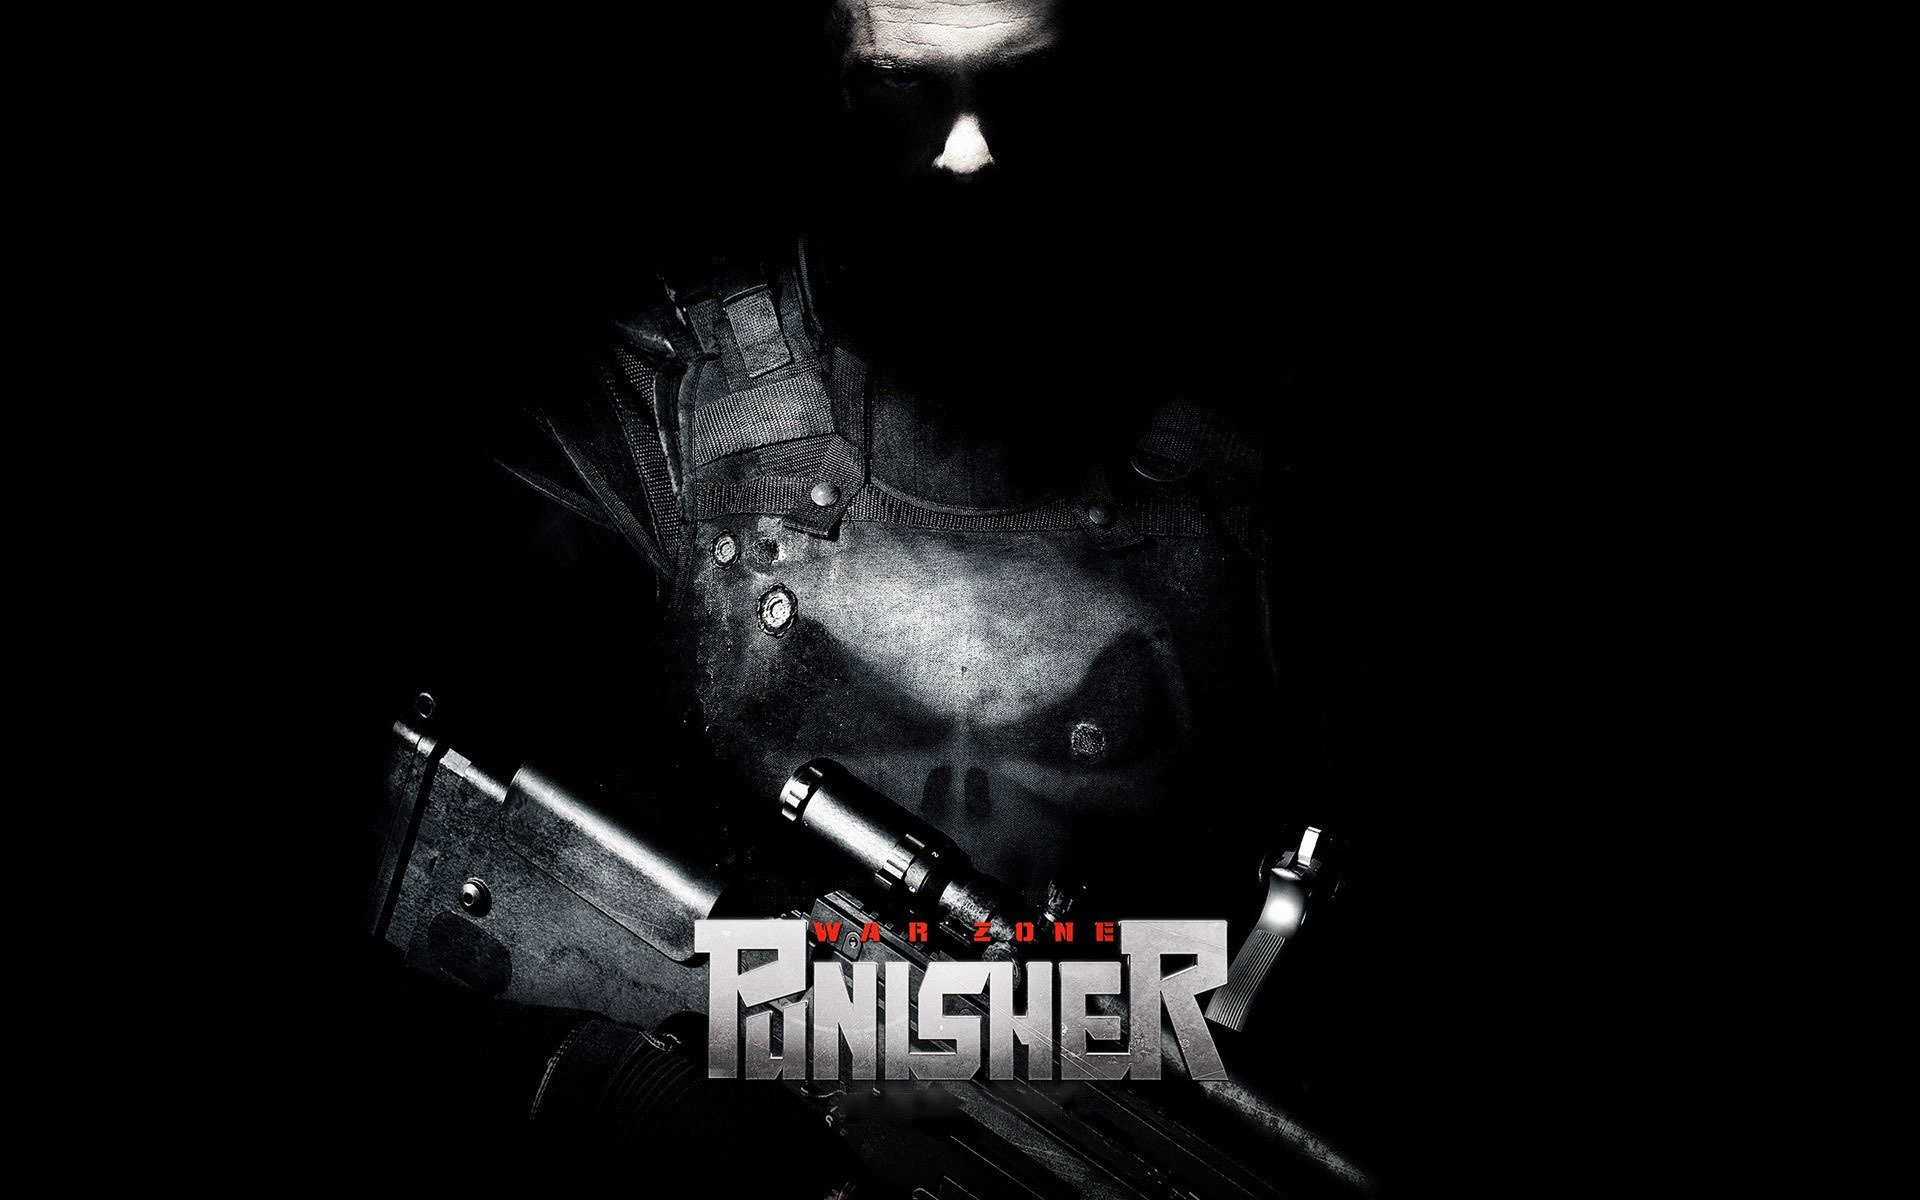 punisher wallpaper skull  59  images